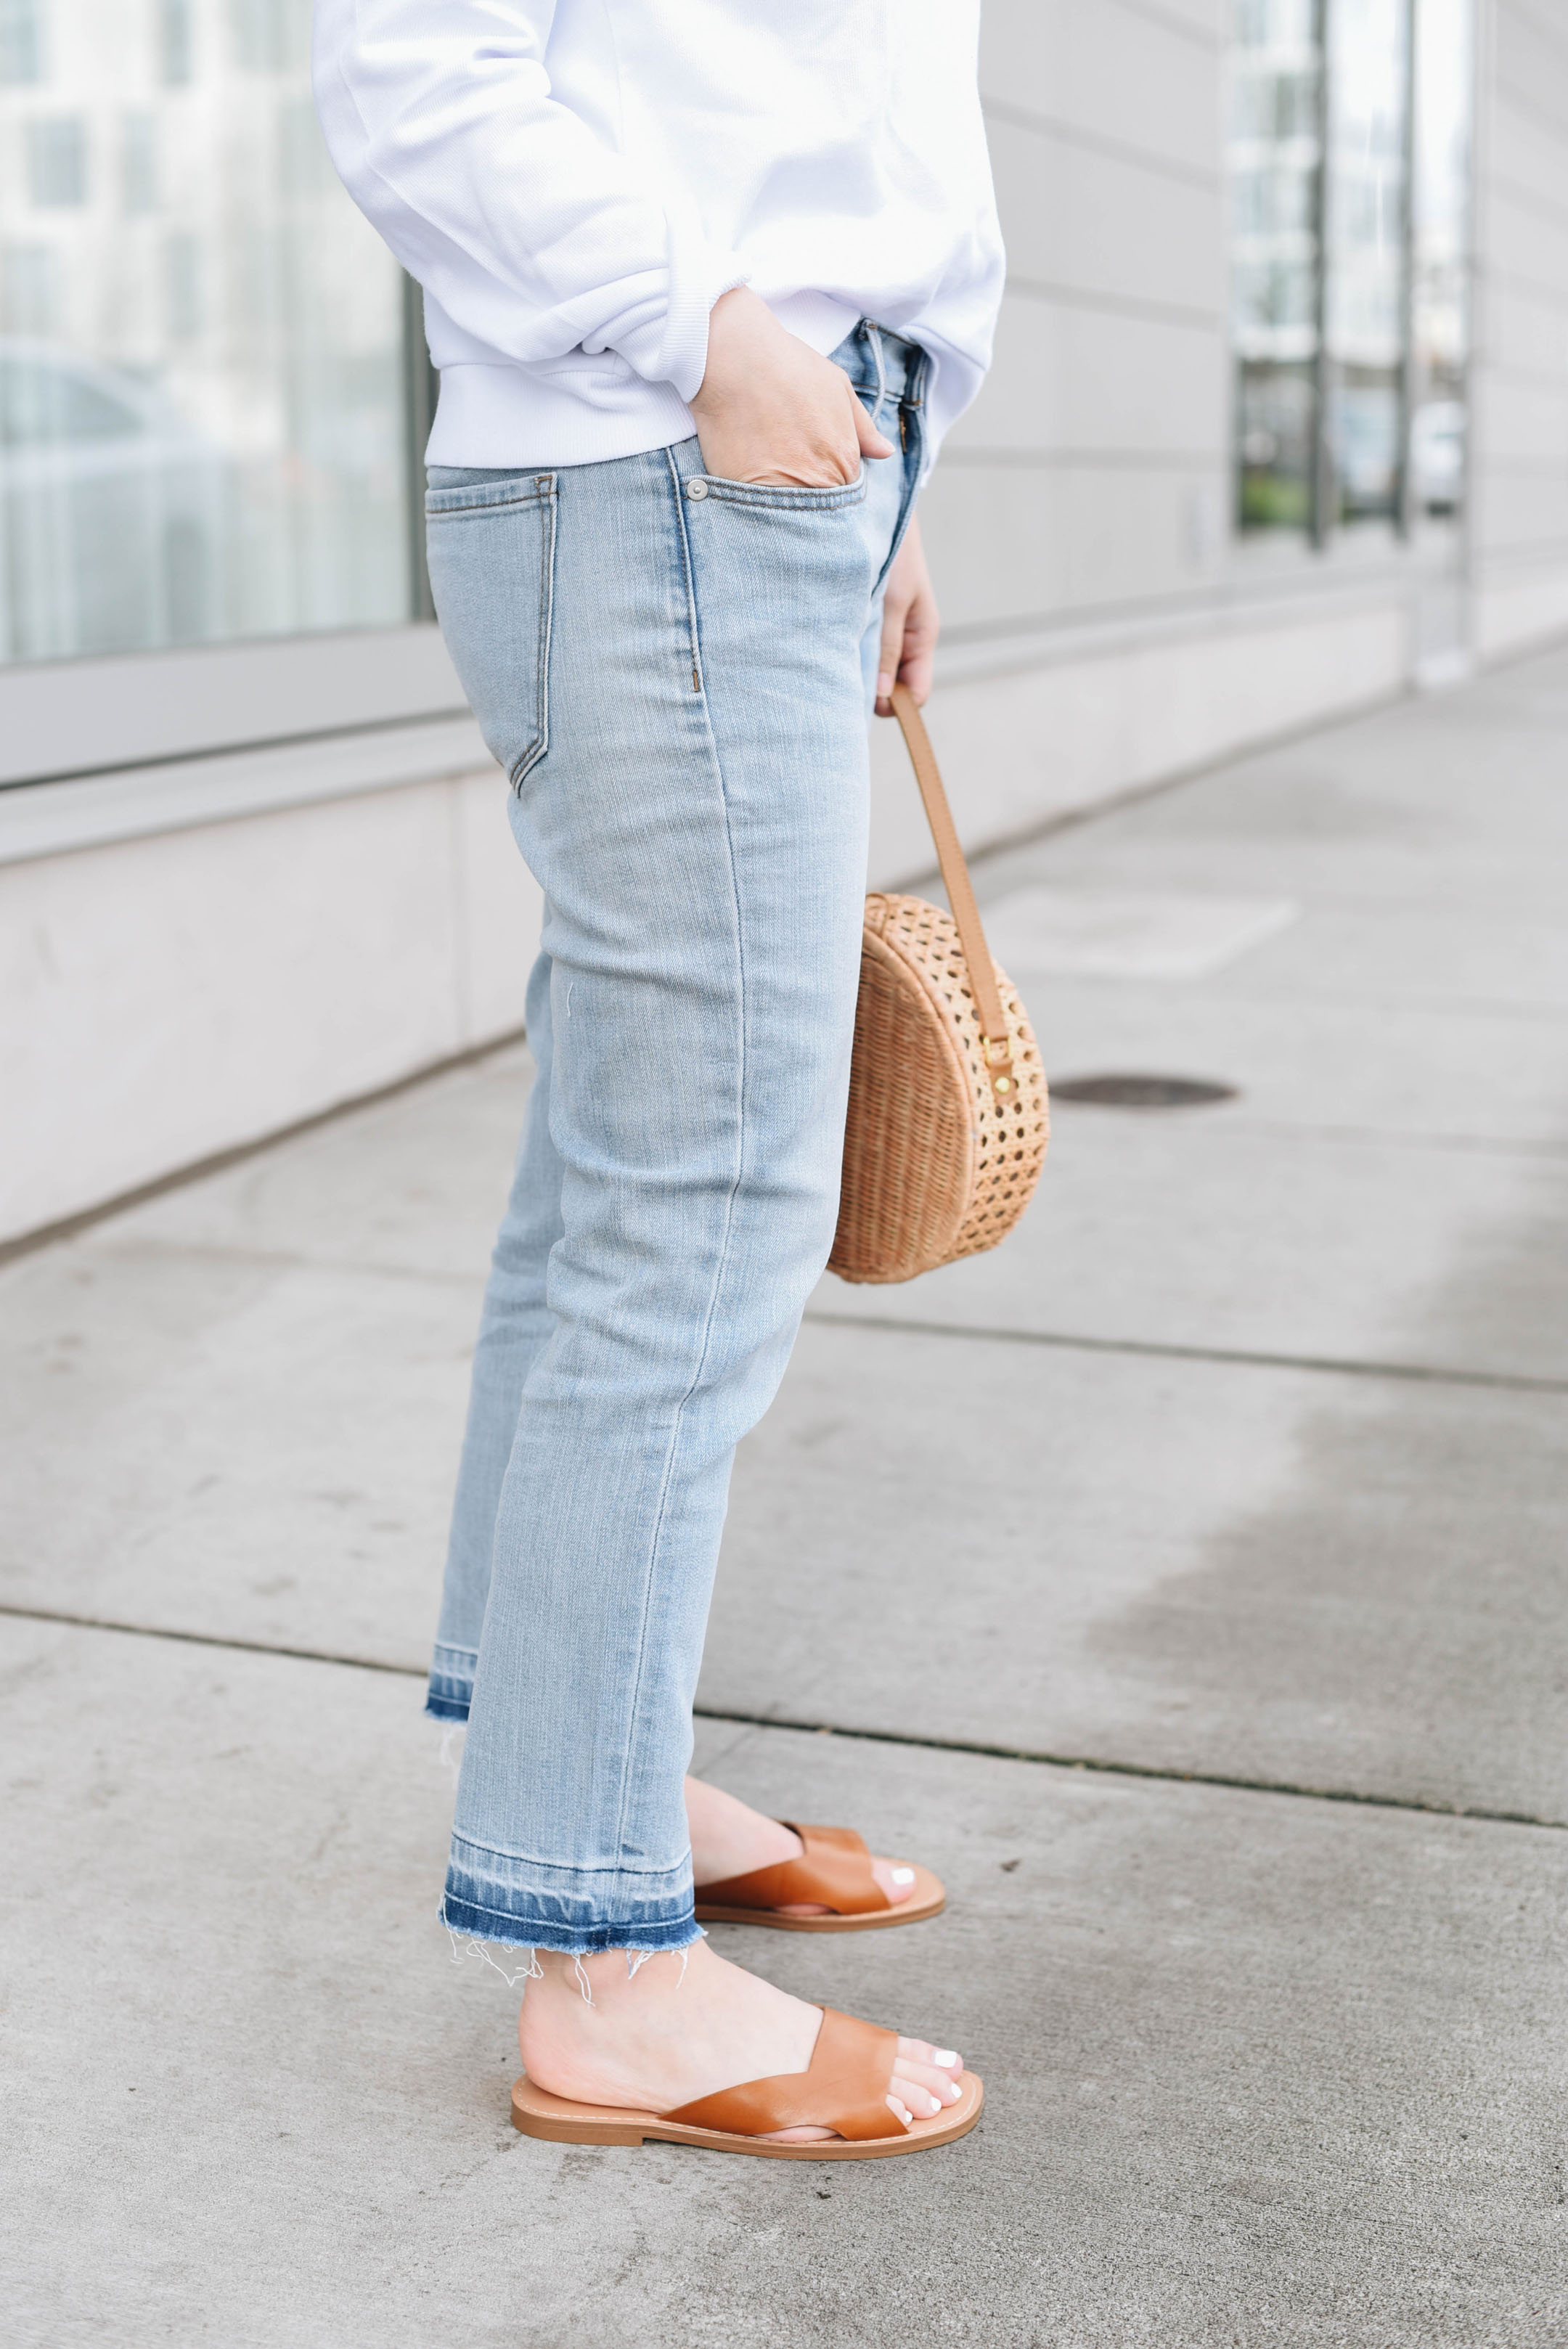 Banana Republic light wash jeans